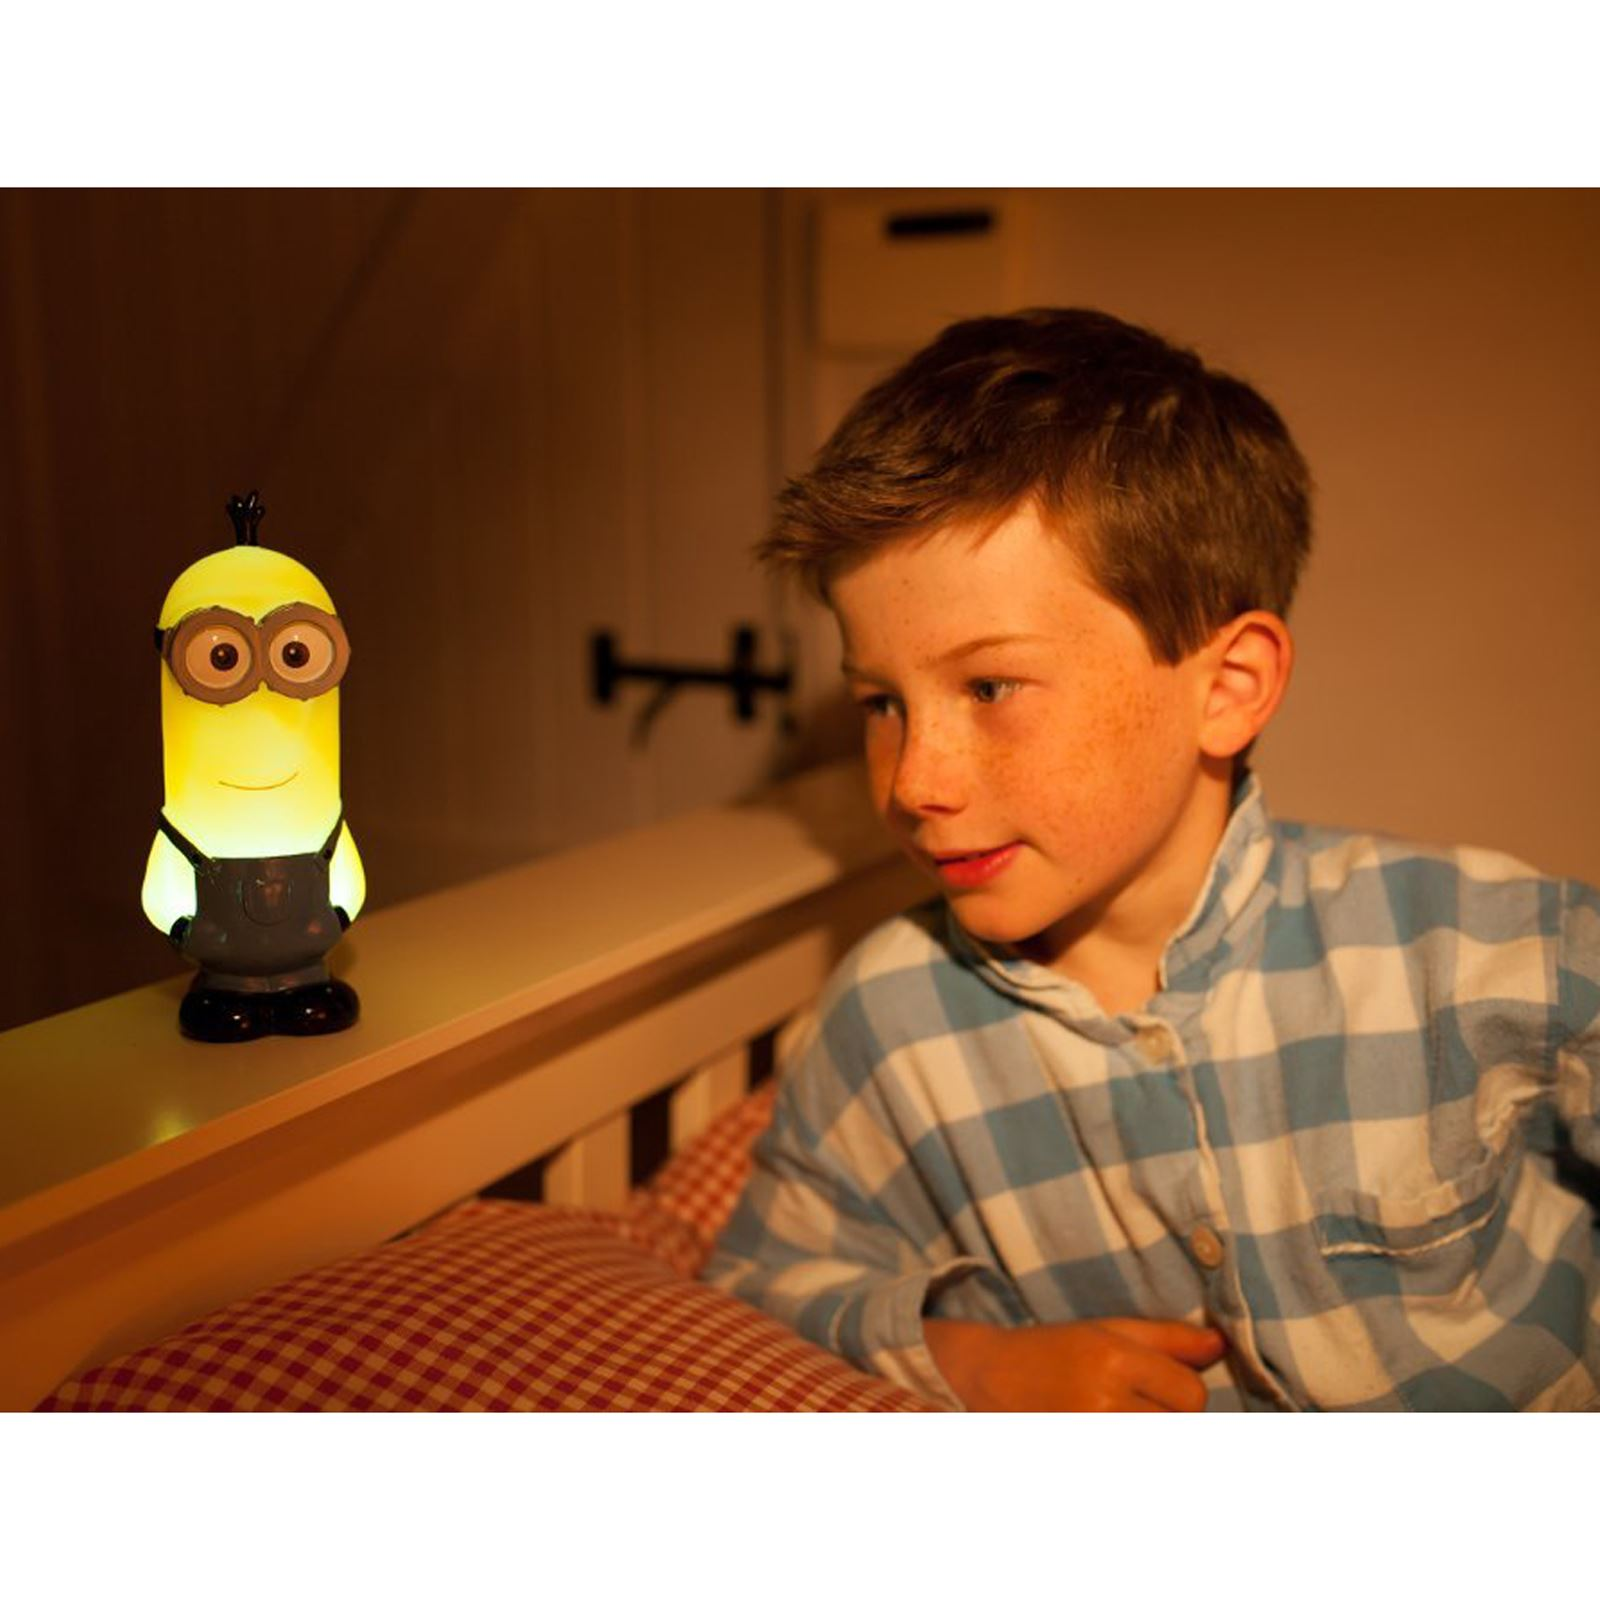 Childrens Bedside Lights Minions Kids Bedroom Lighting Night Light Lamp Bedside